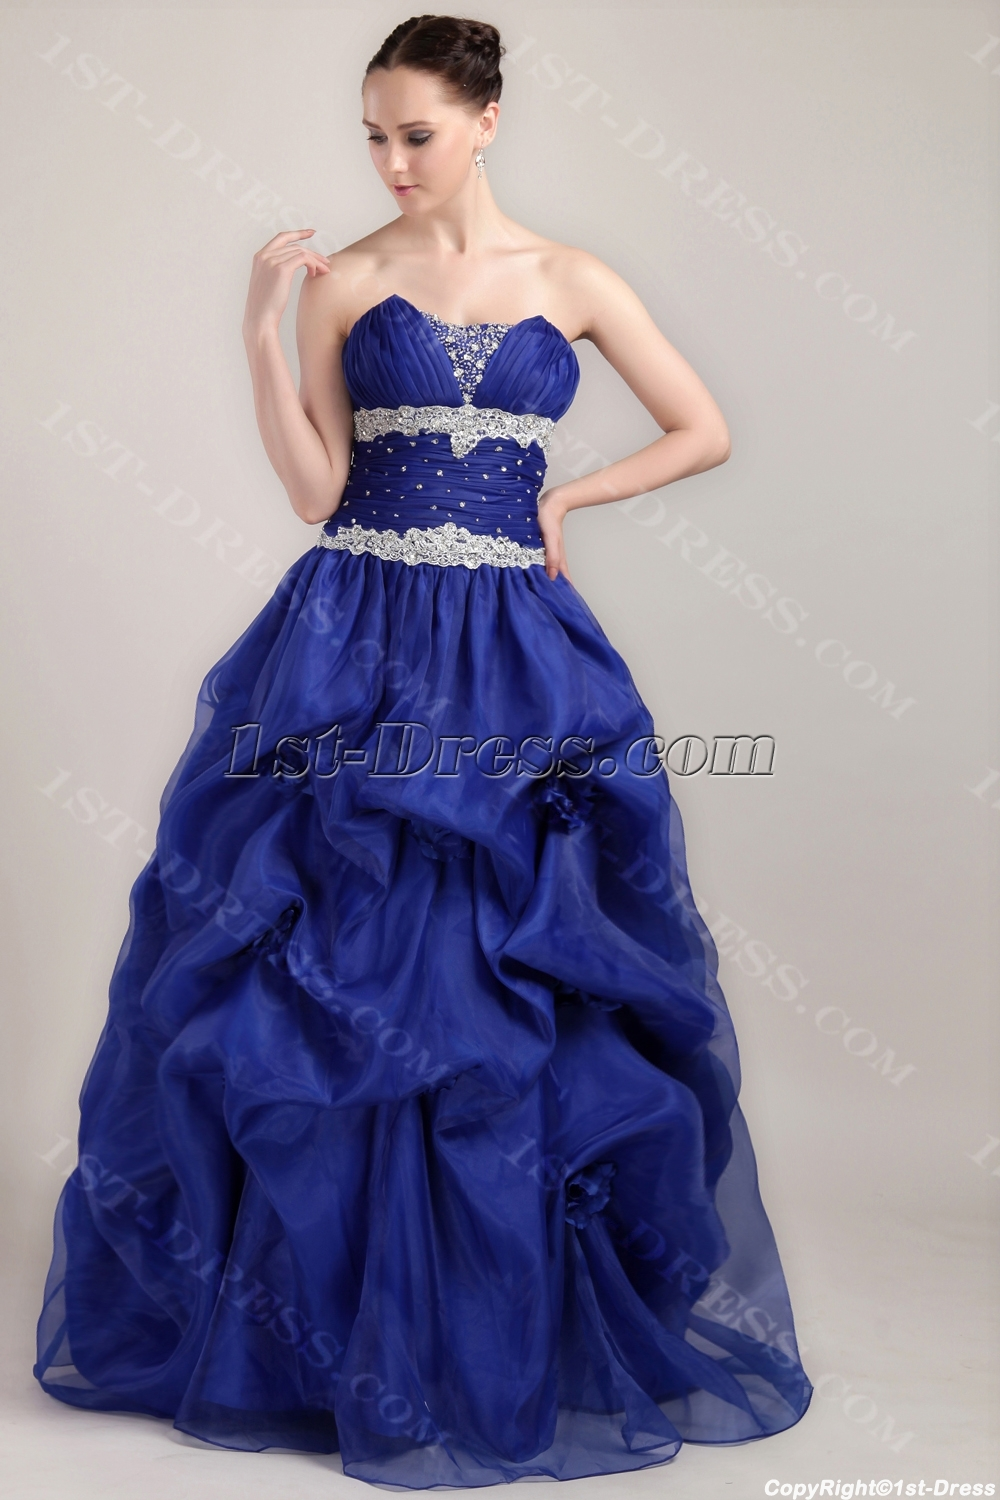 images/201304/big/Royal-Blue-15-Quince-Dress-with-Floral-IMG_3453-1070-b-1-1366201157.jpg